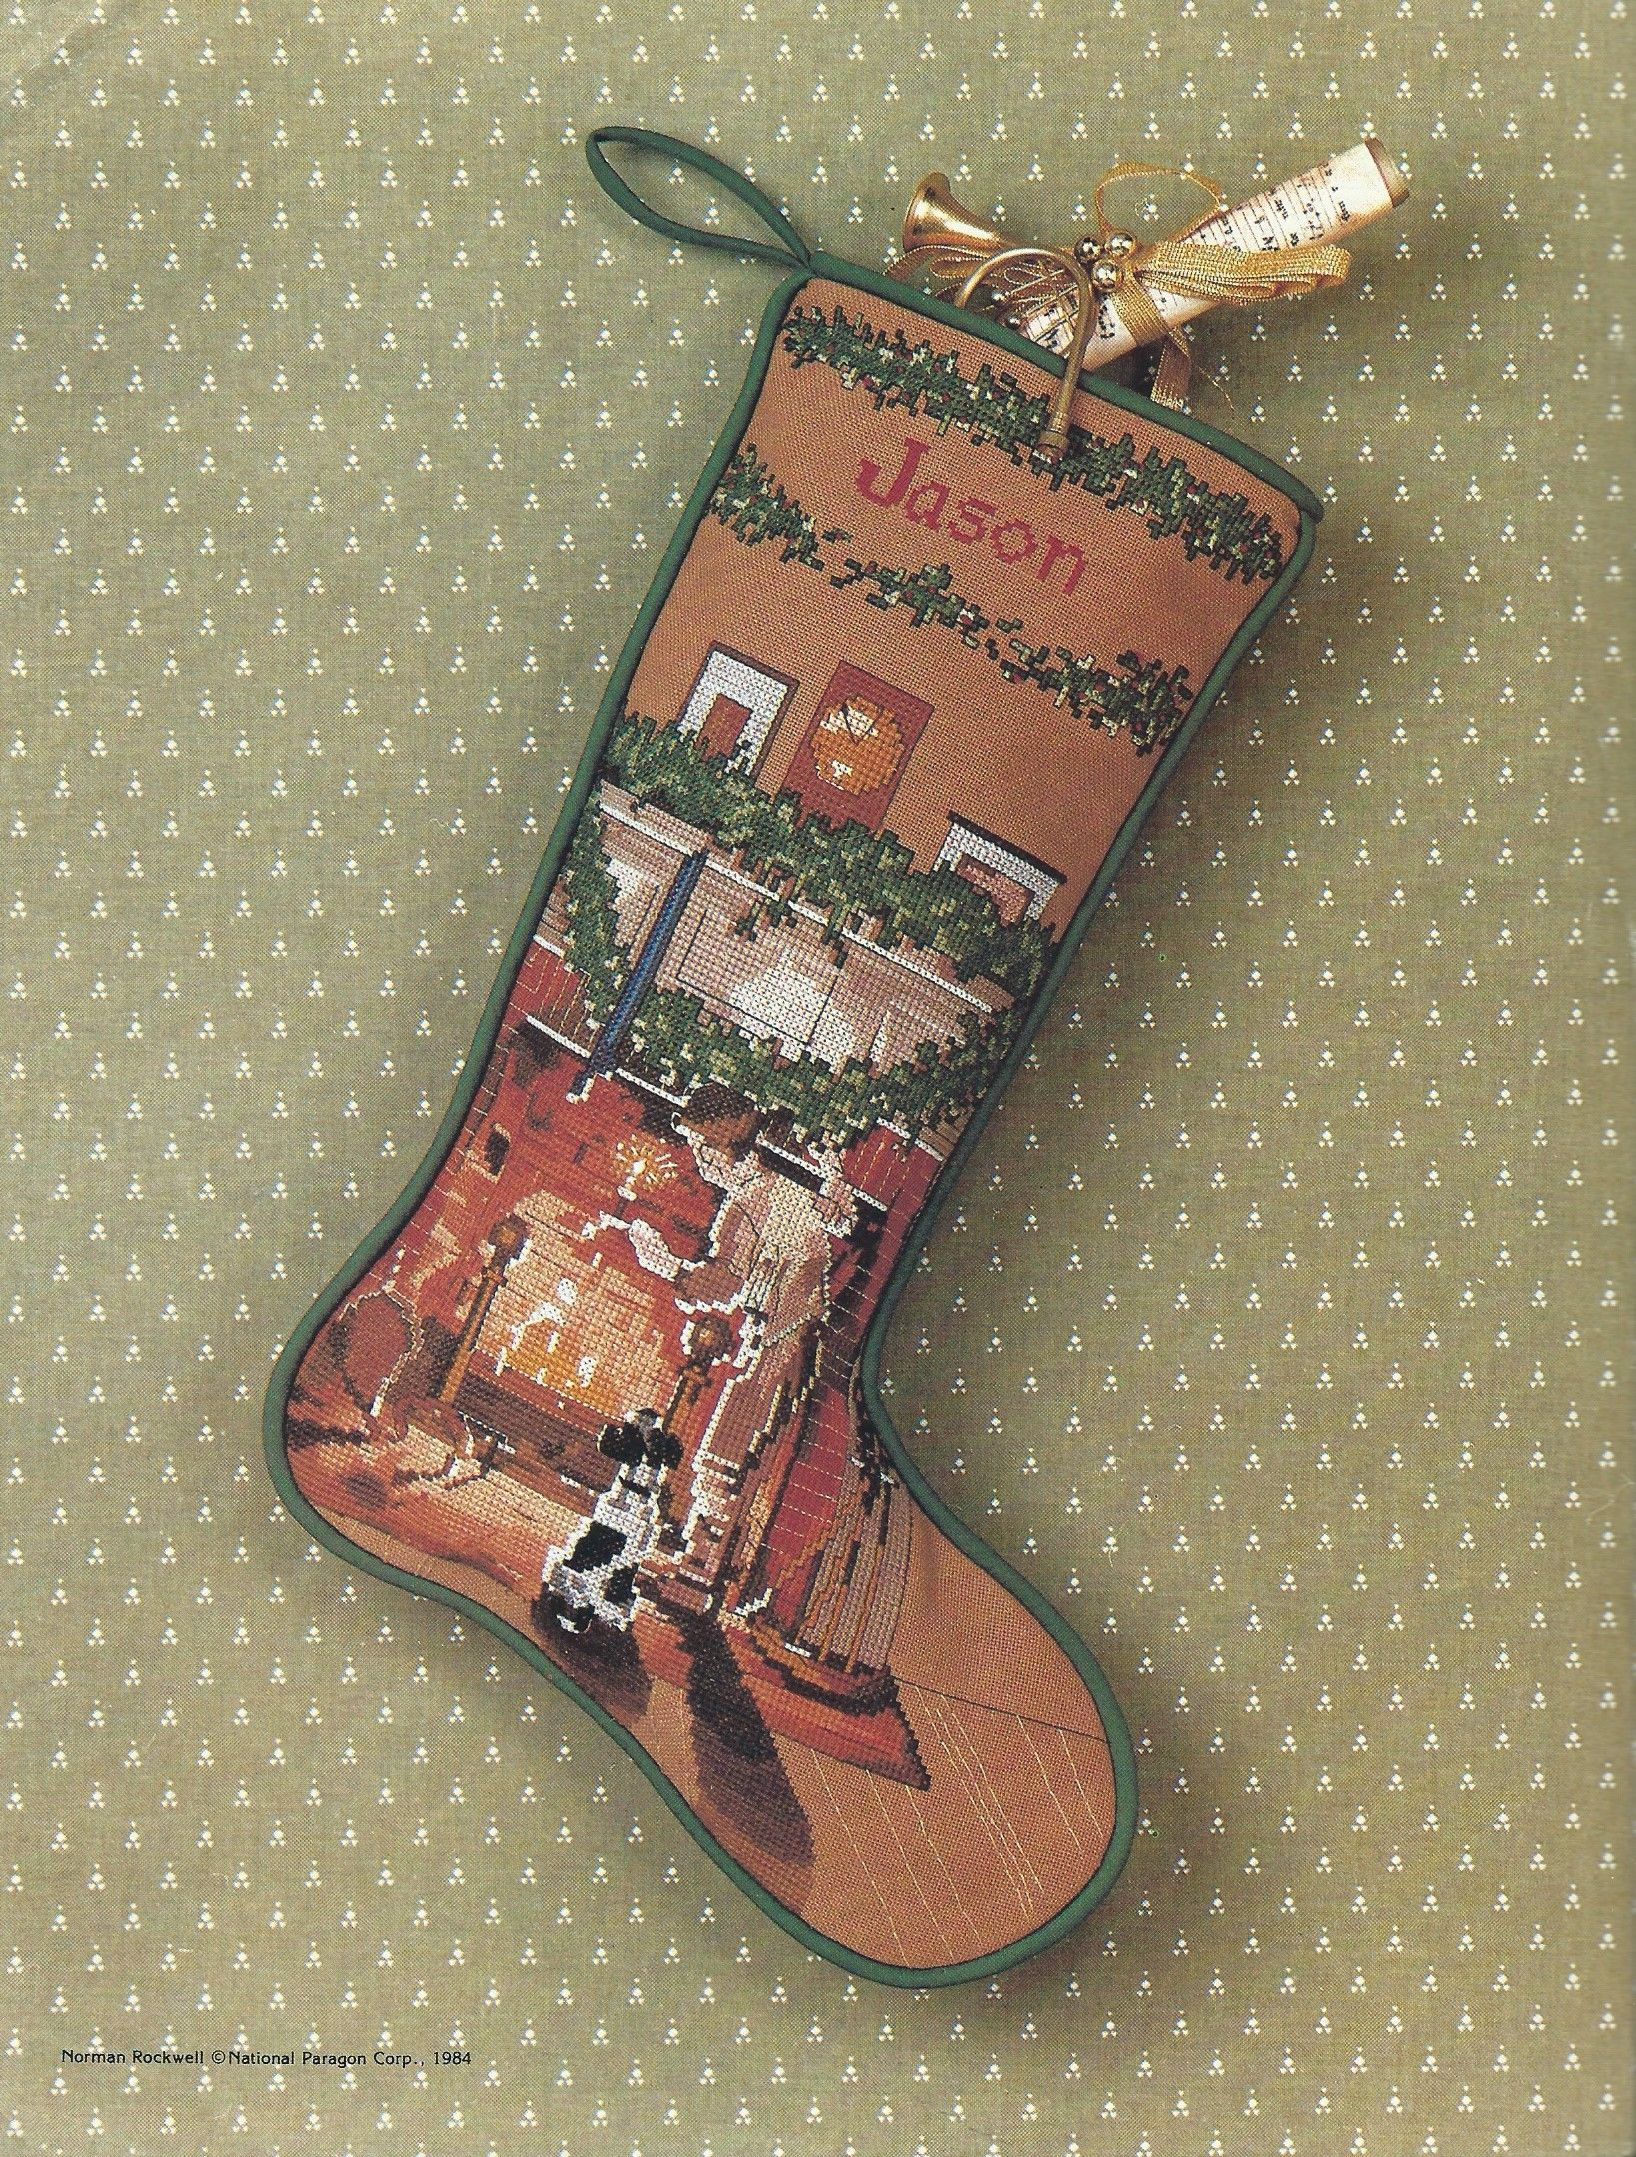 Looking for santa norman rockwell holiday designs for